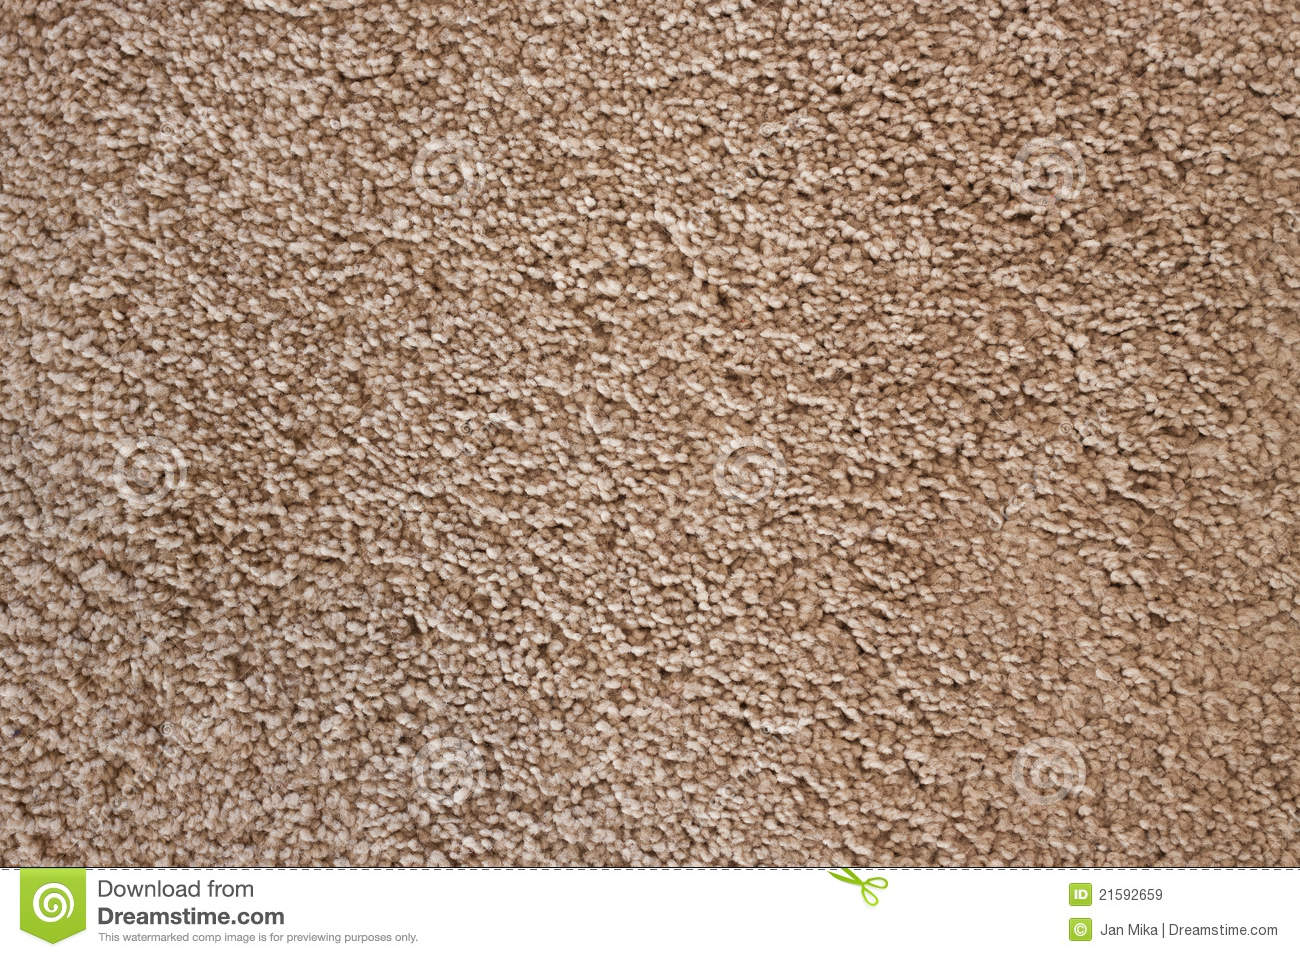 Soft Carpet Textured Background Royalty Free Stock Images   Image